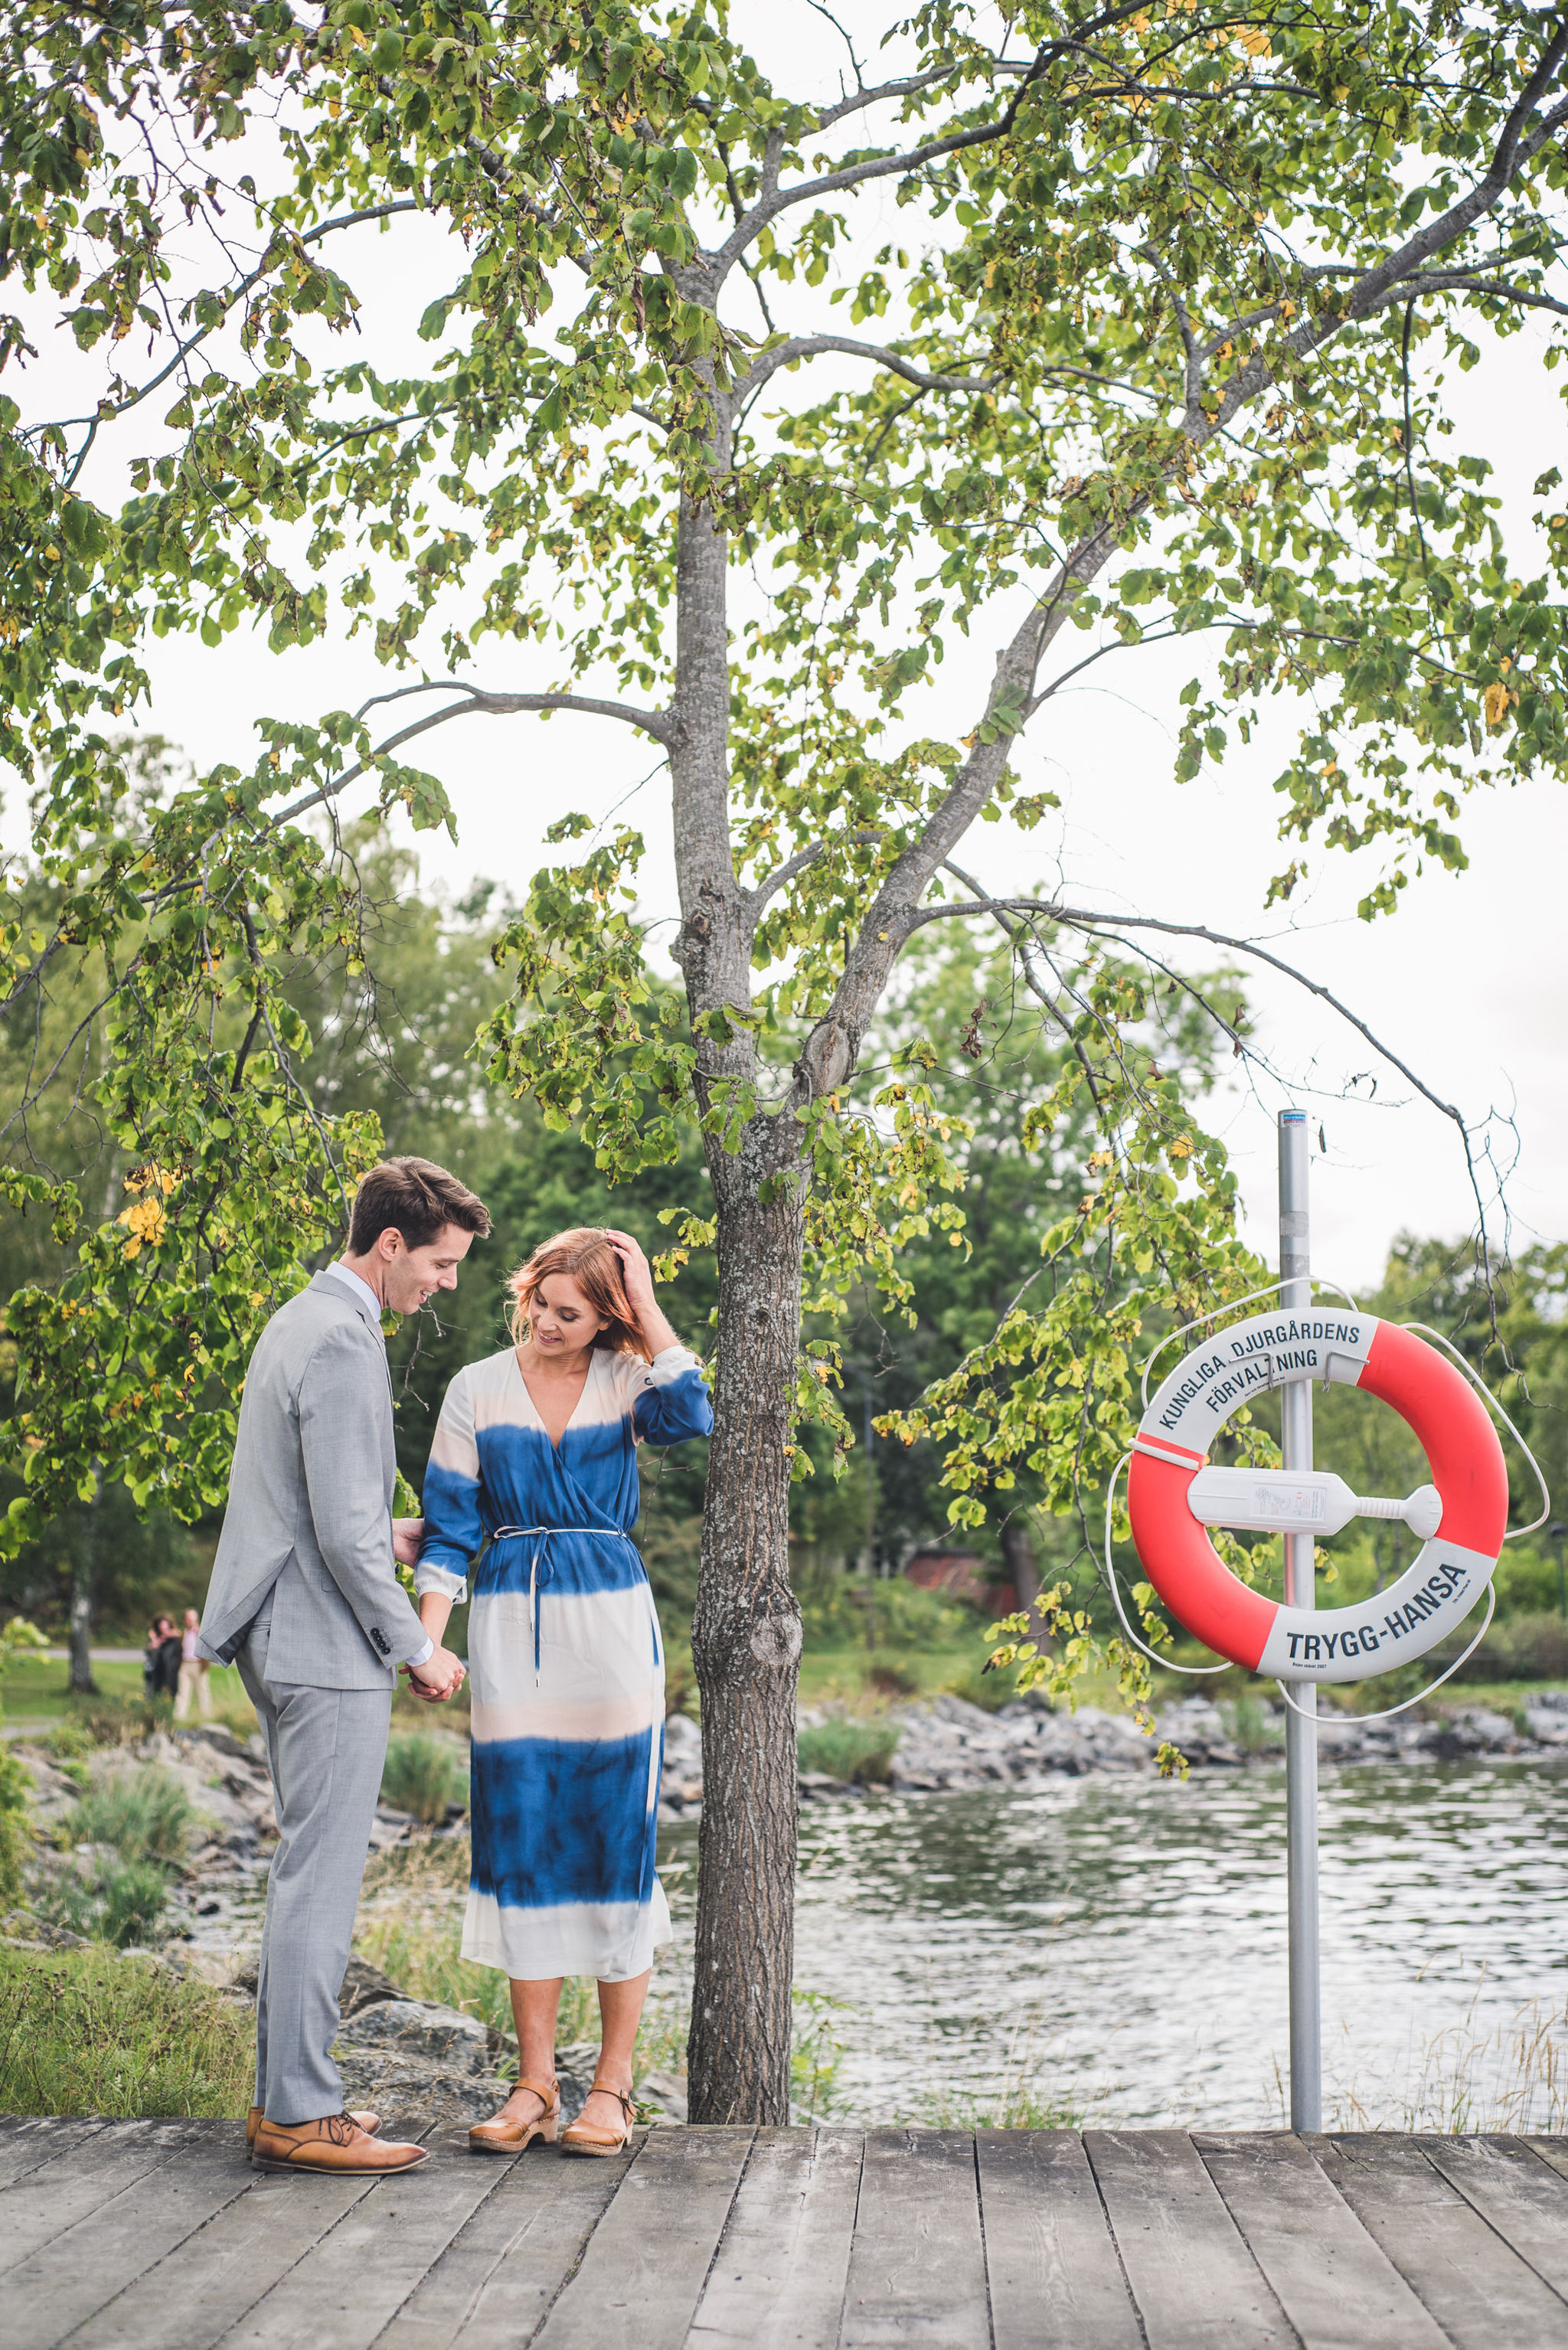 the bridal couple next to a tree and a lifebuoy